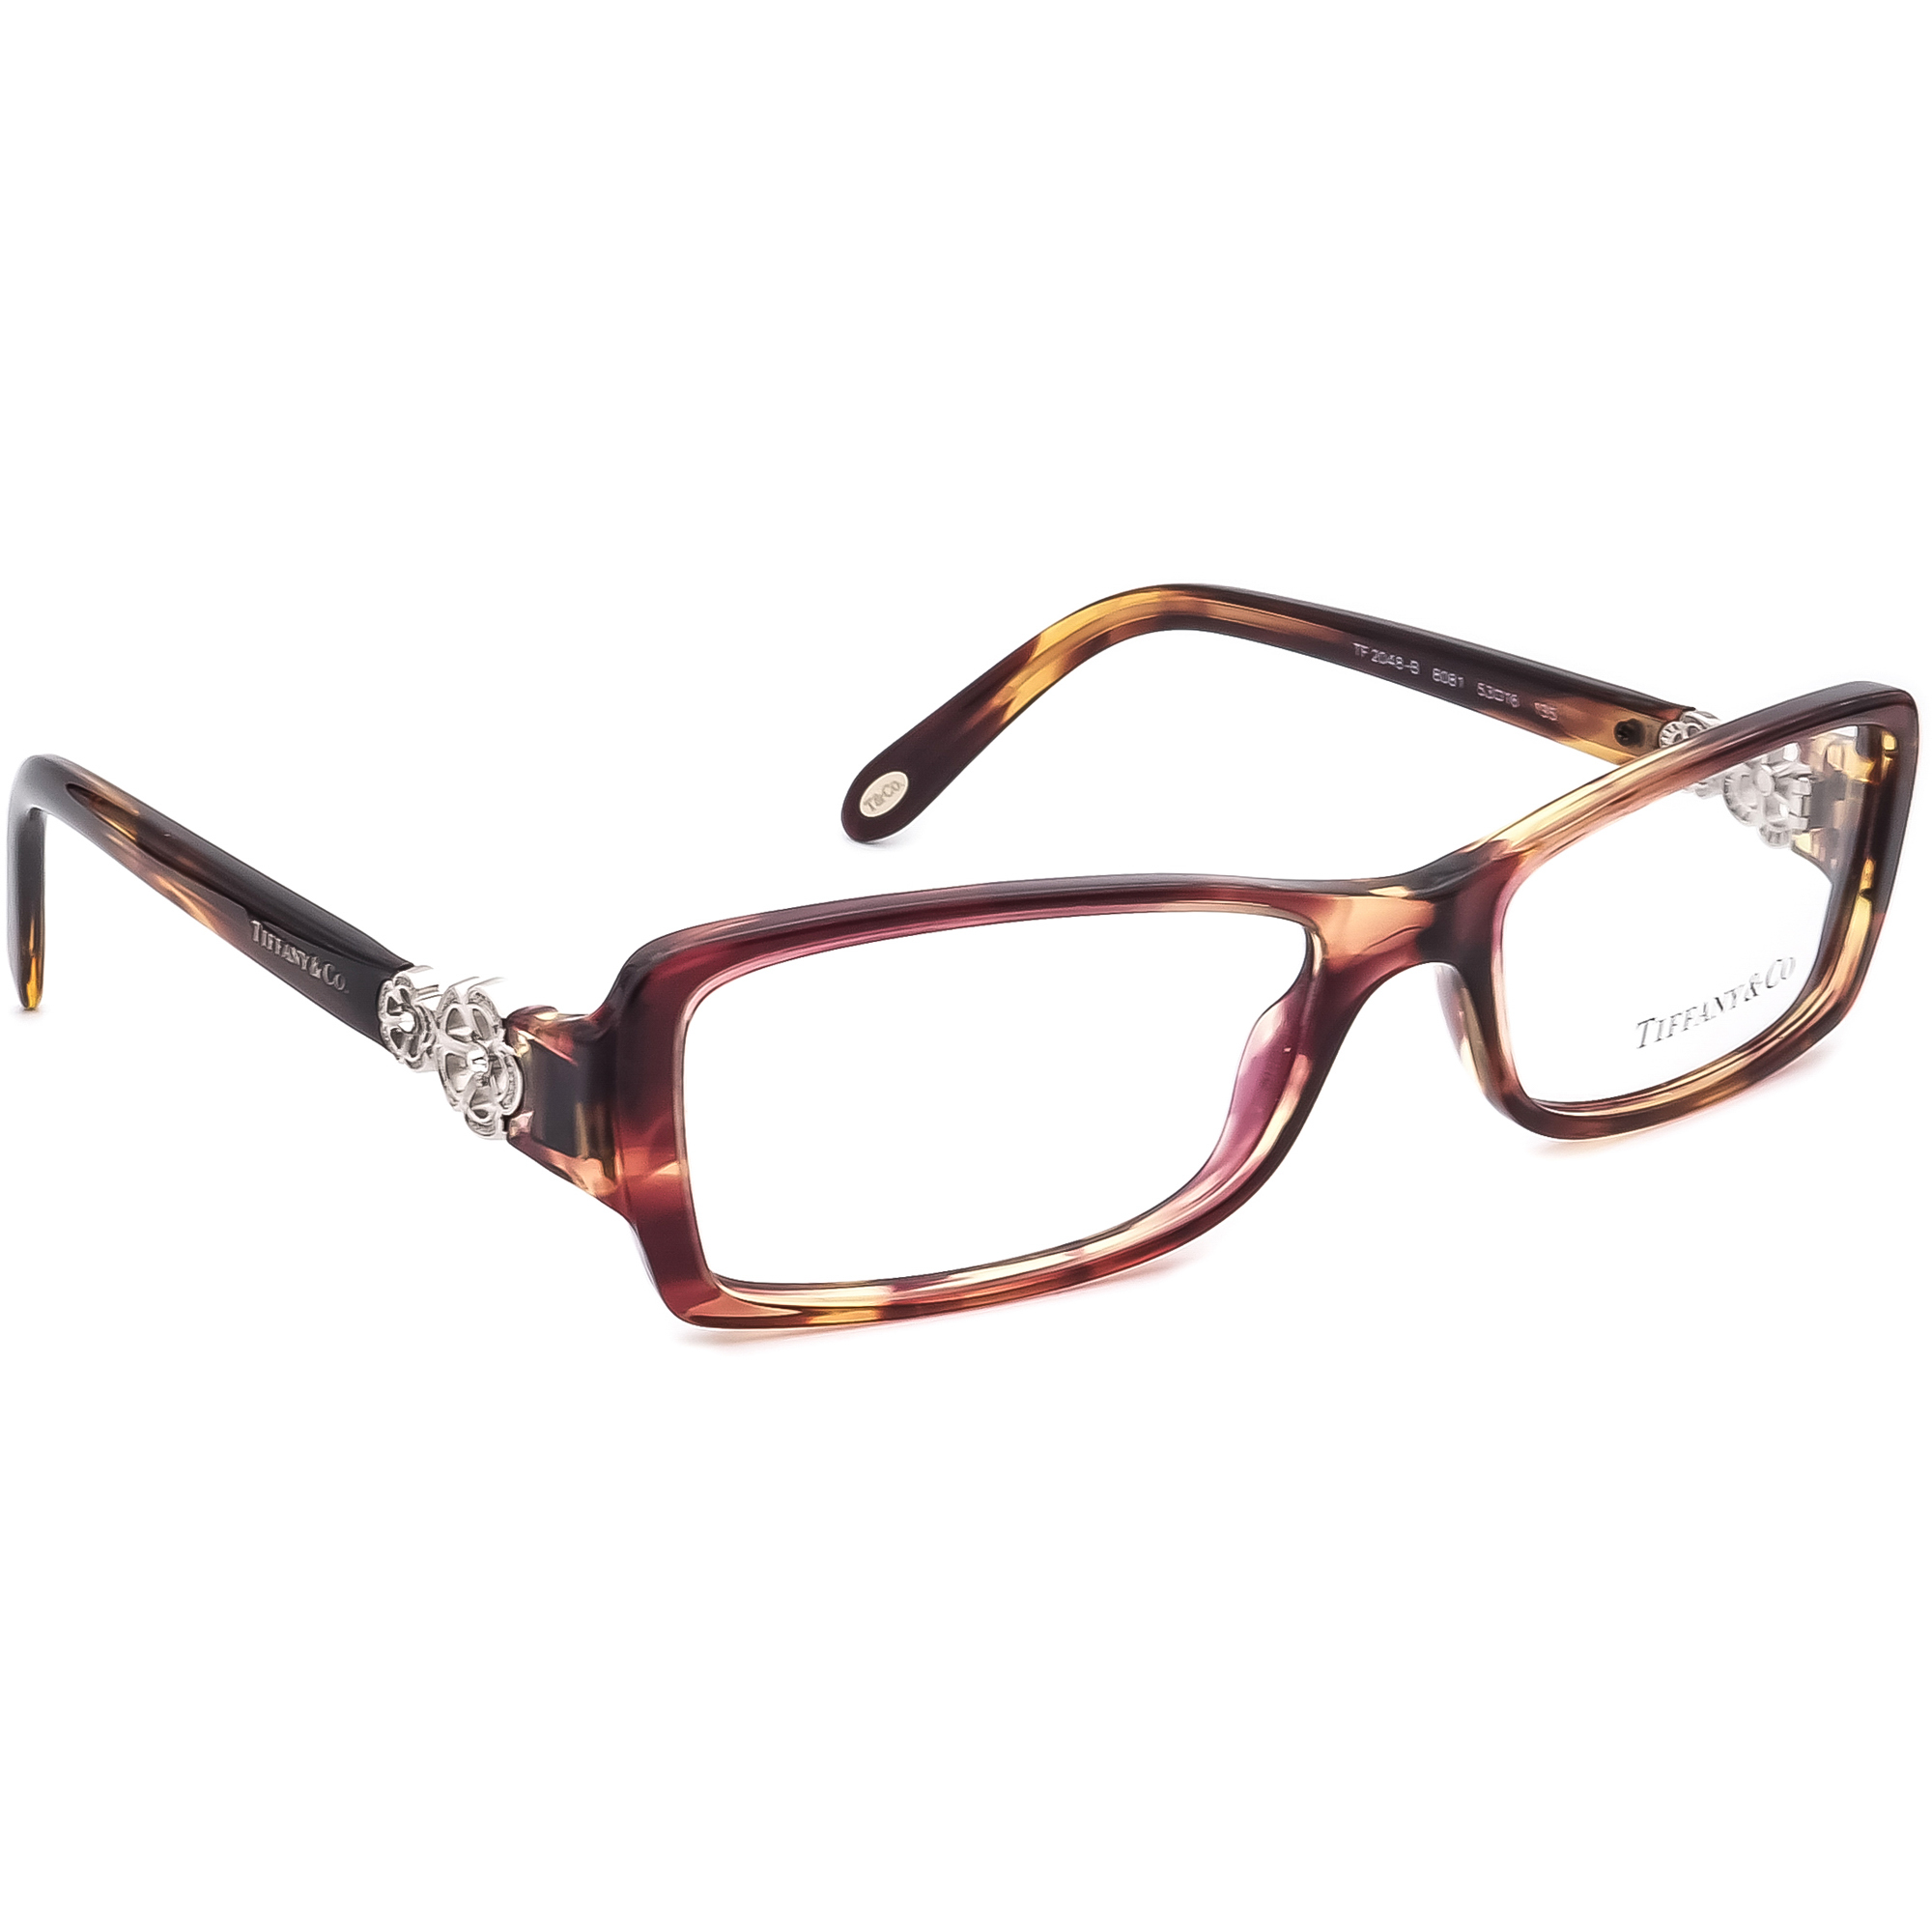 Tiffany & Co. TF 2048-B 8081 Eyeglasses